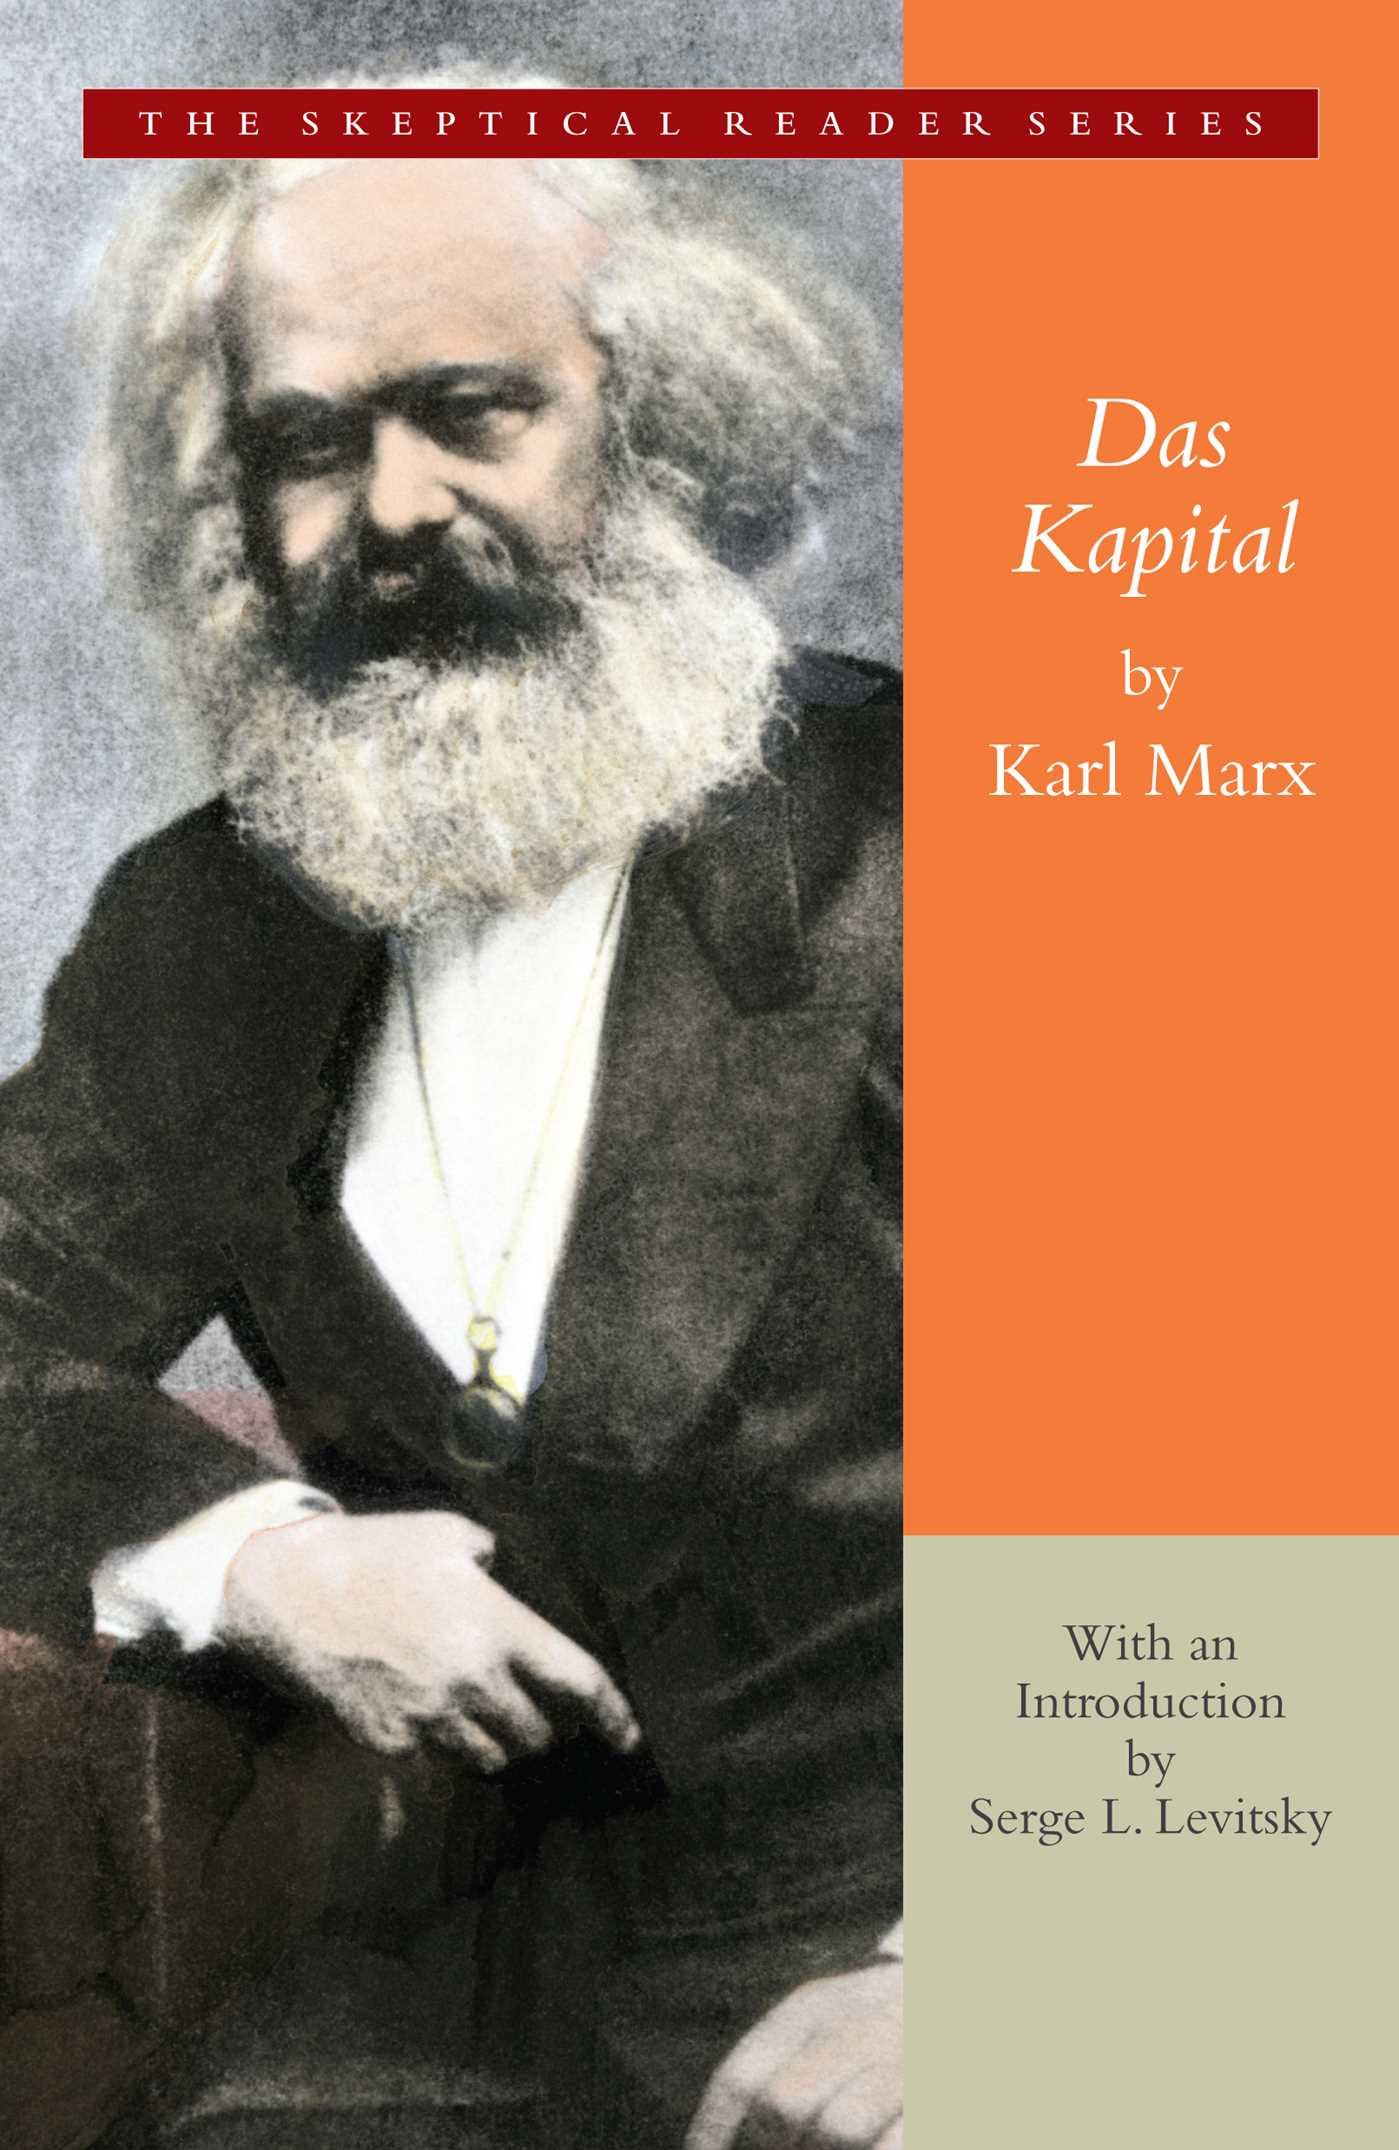 Image result for das kapital images